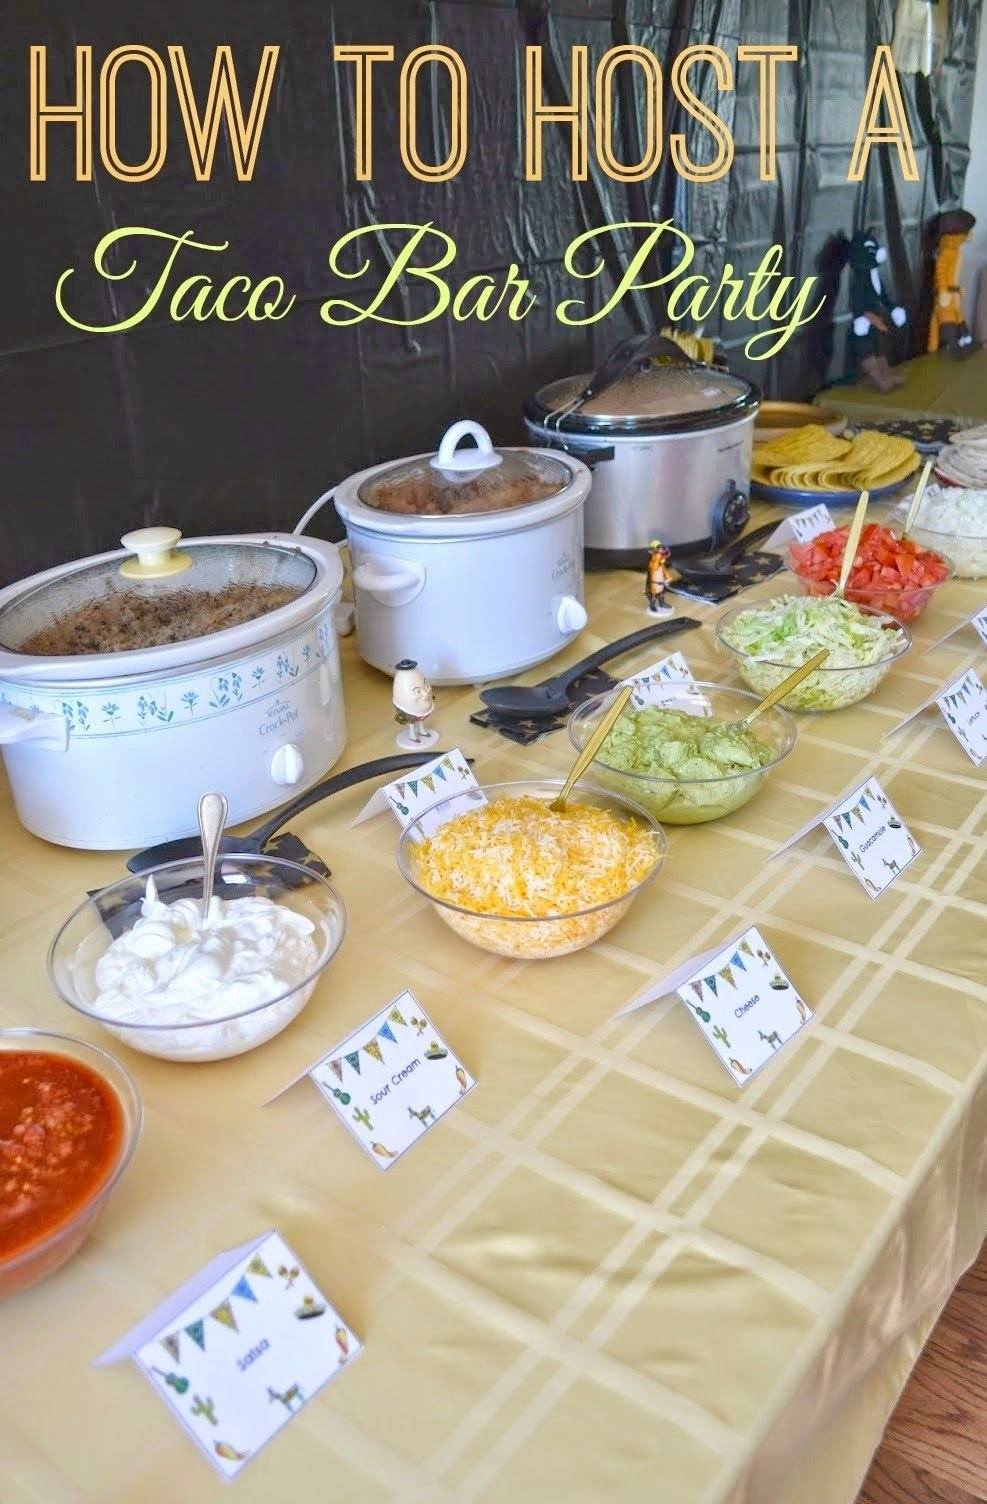 10 Fashionable Food Ideas For Birthday Party diy taco bar party table tents free printables taco bar party 4 2021